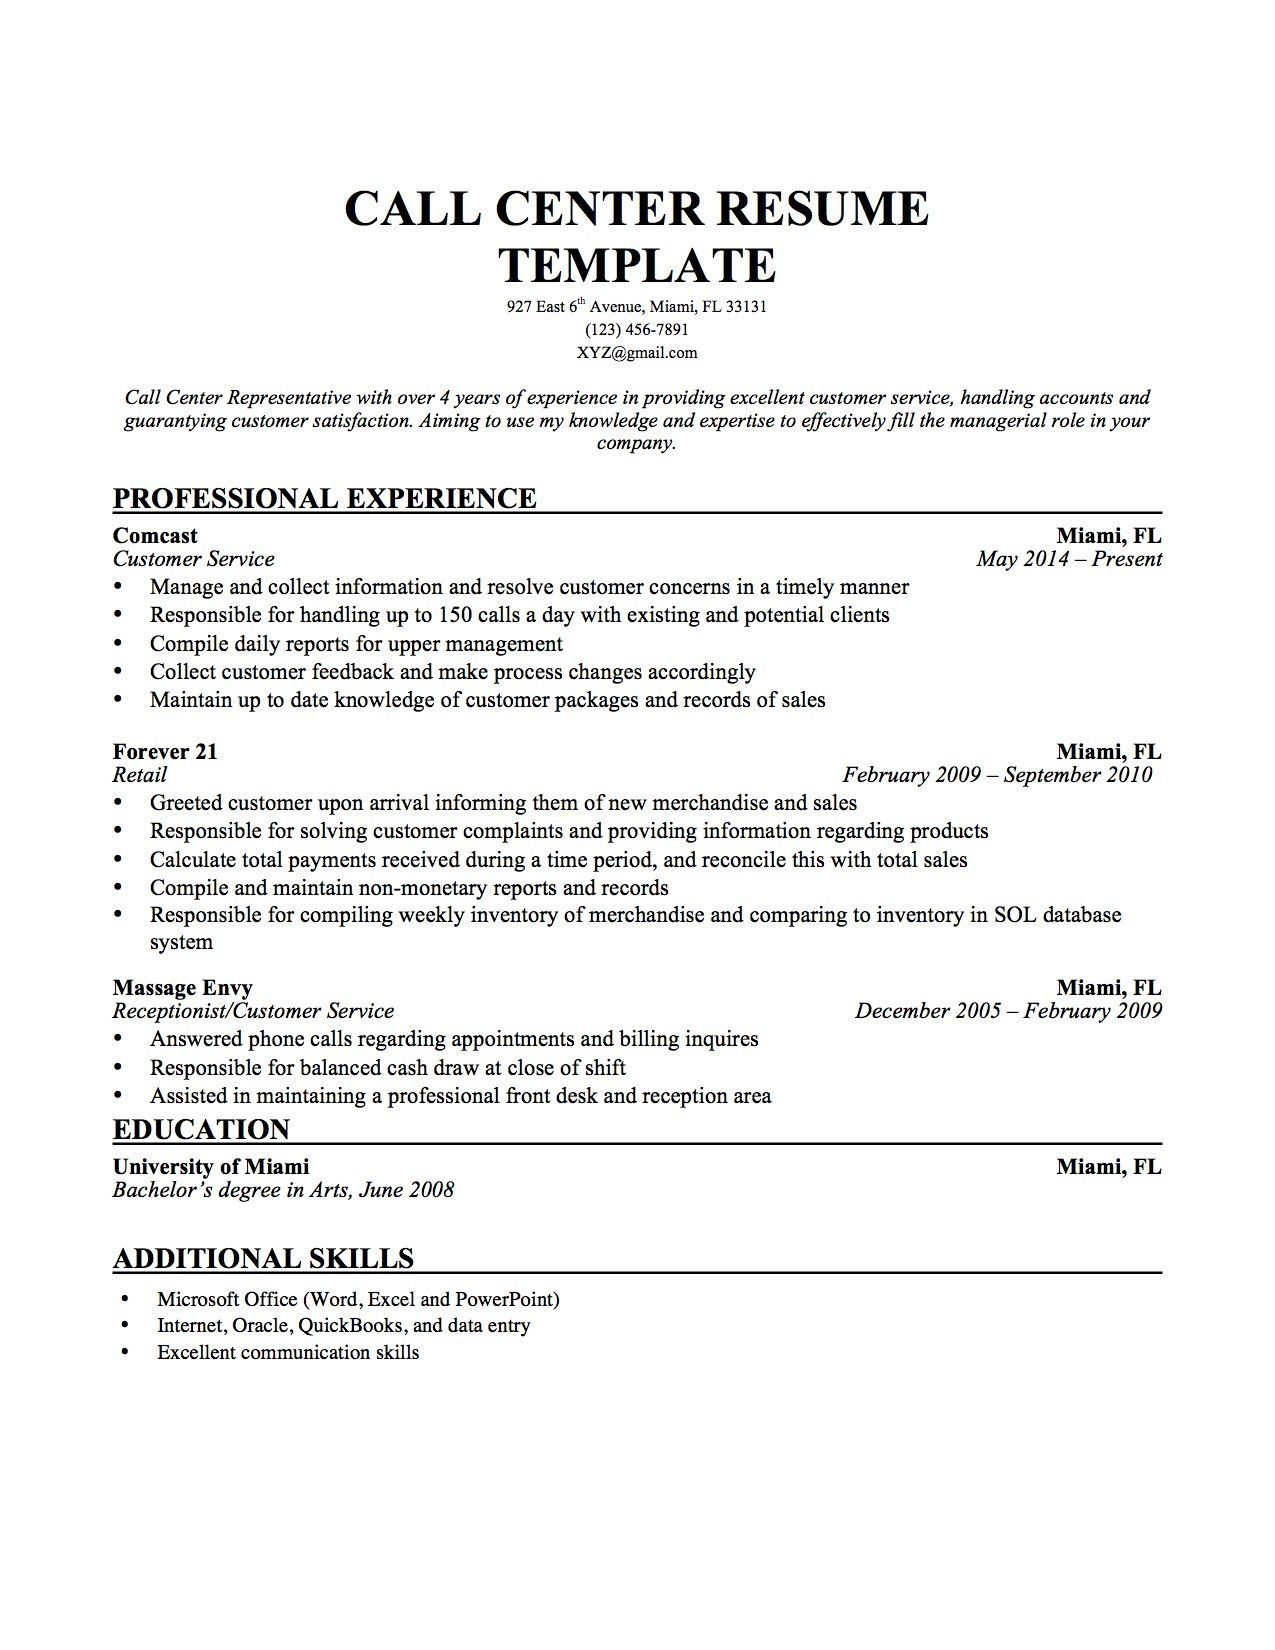 Call Center Resume Template Definition Application Letter And Resume Cover Name Meaning